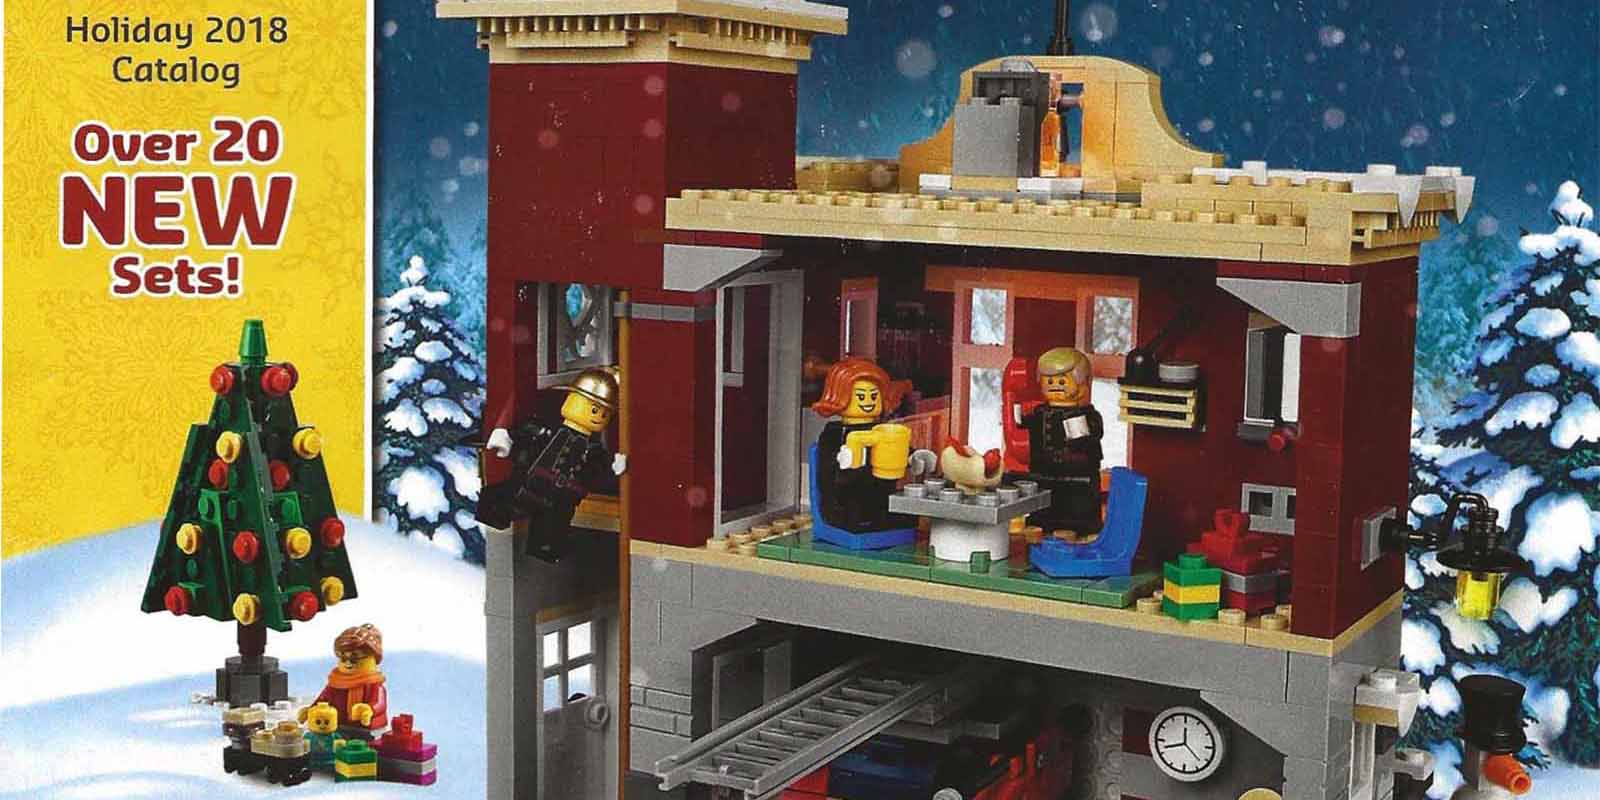 Winter Lego City Sets 2018 - Year of Clean Water